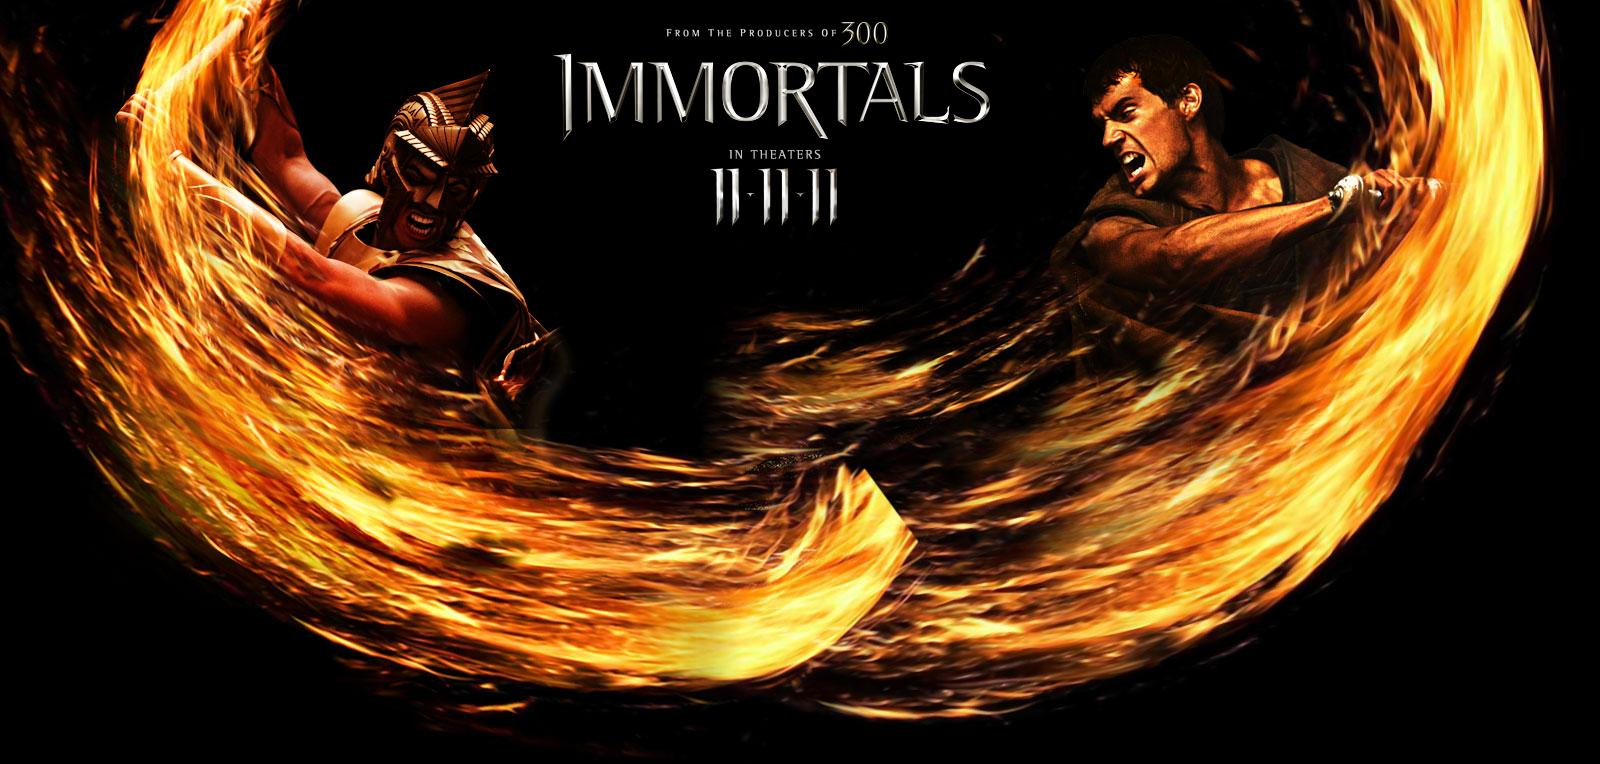 immortals film review 2011